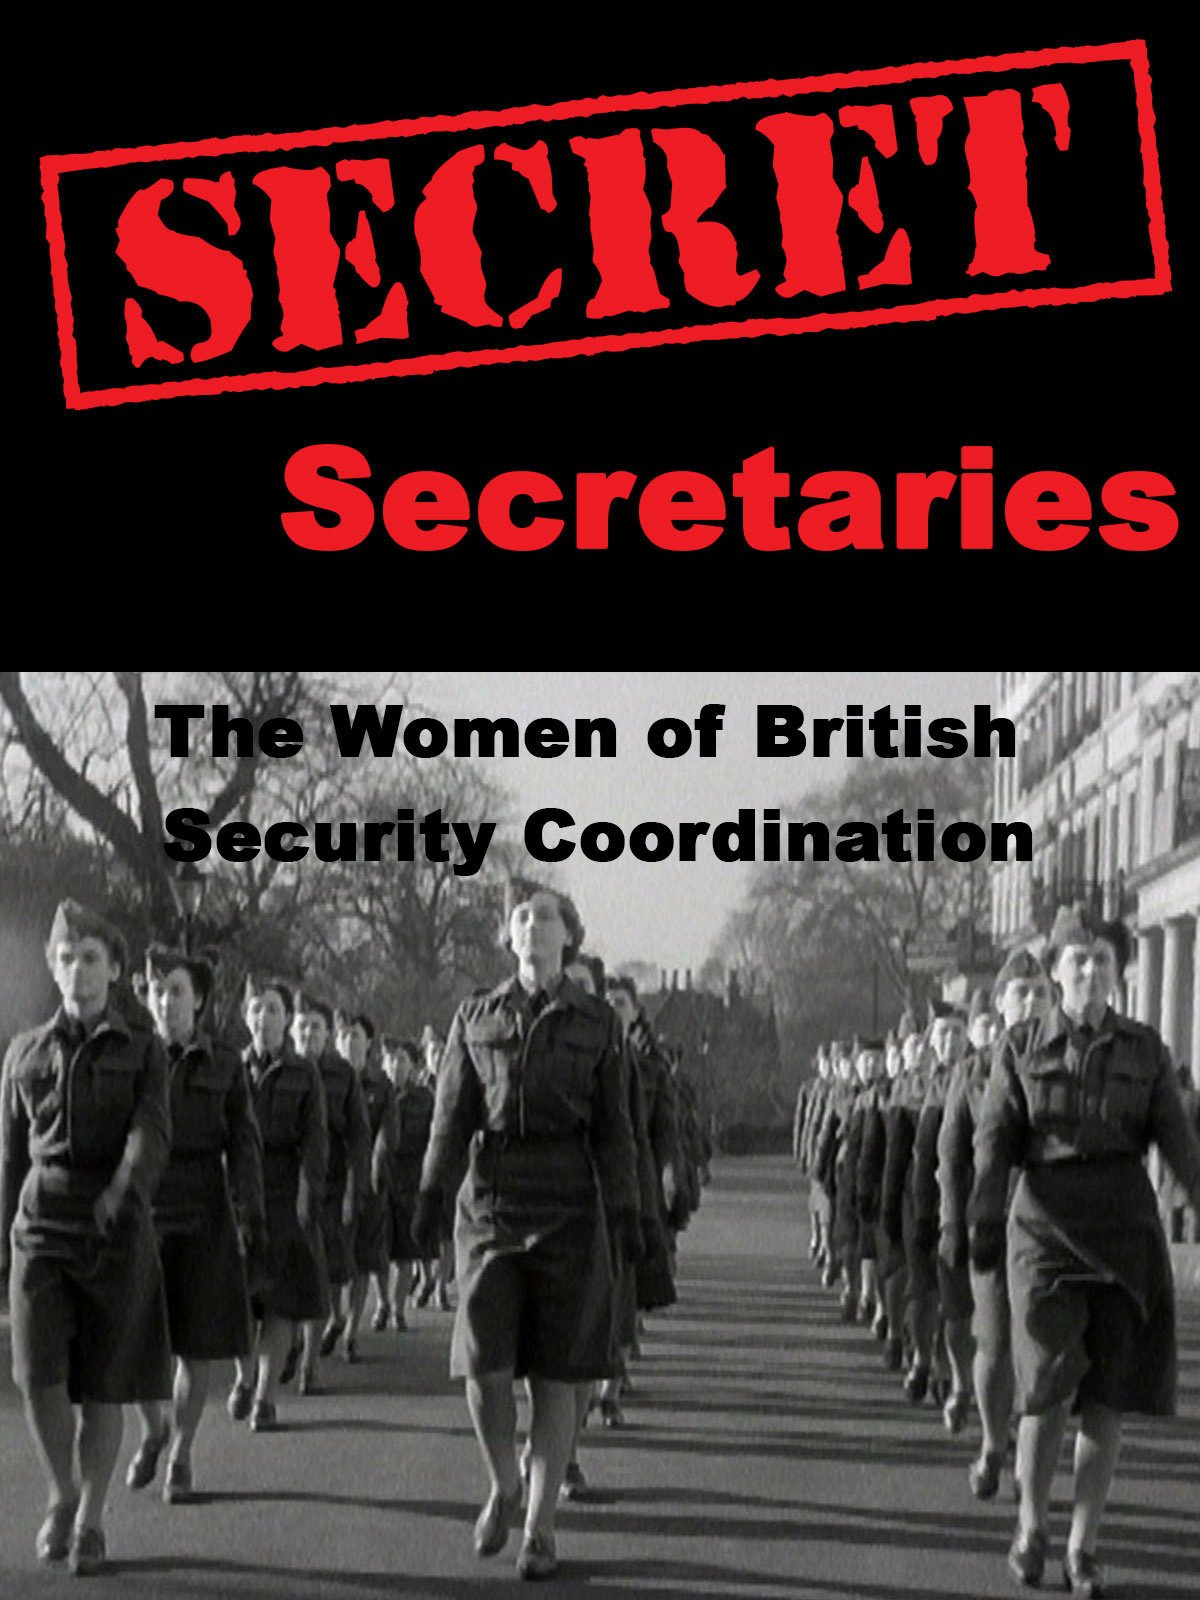 Secret Secretaries: The Women of British Security Co-ordination